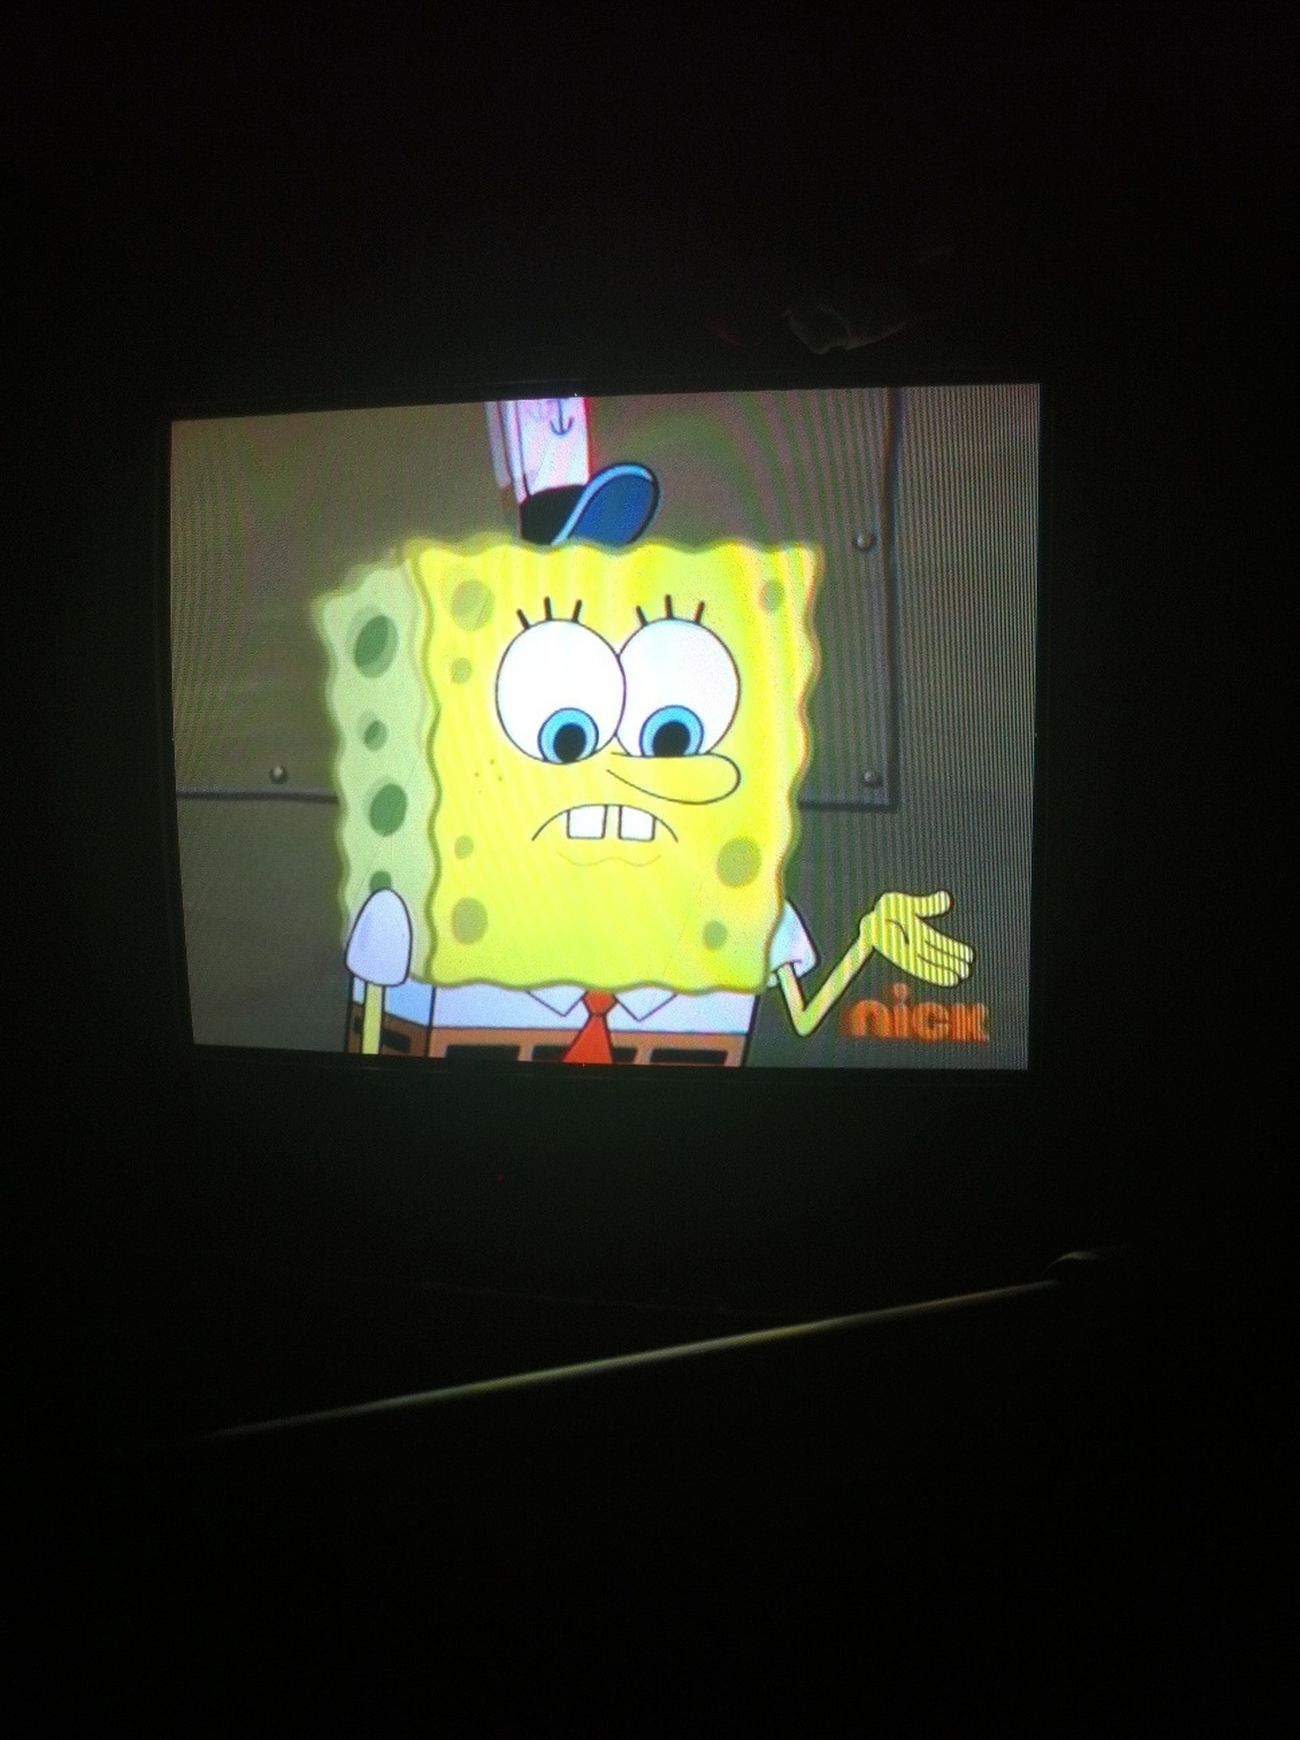 Chilling Watching Spongebob Square Pants